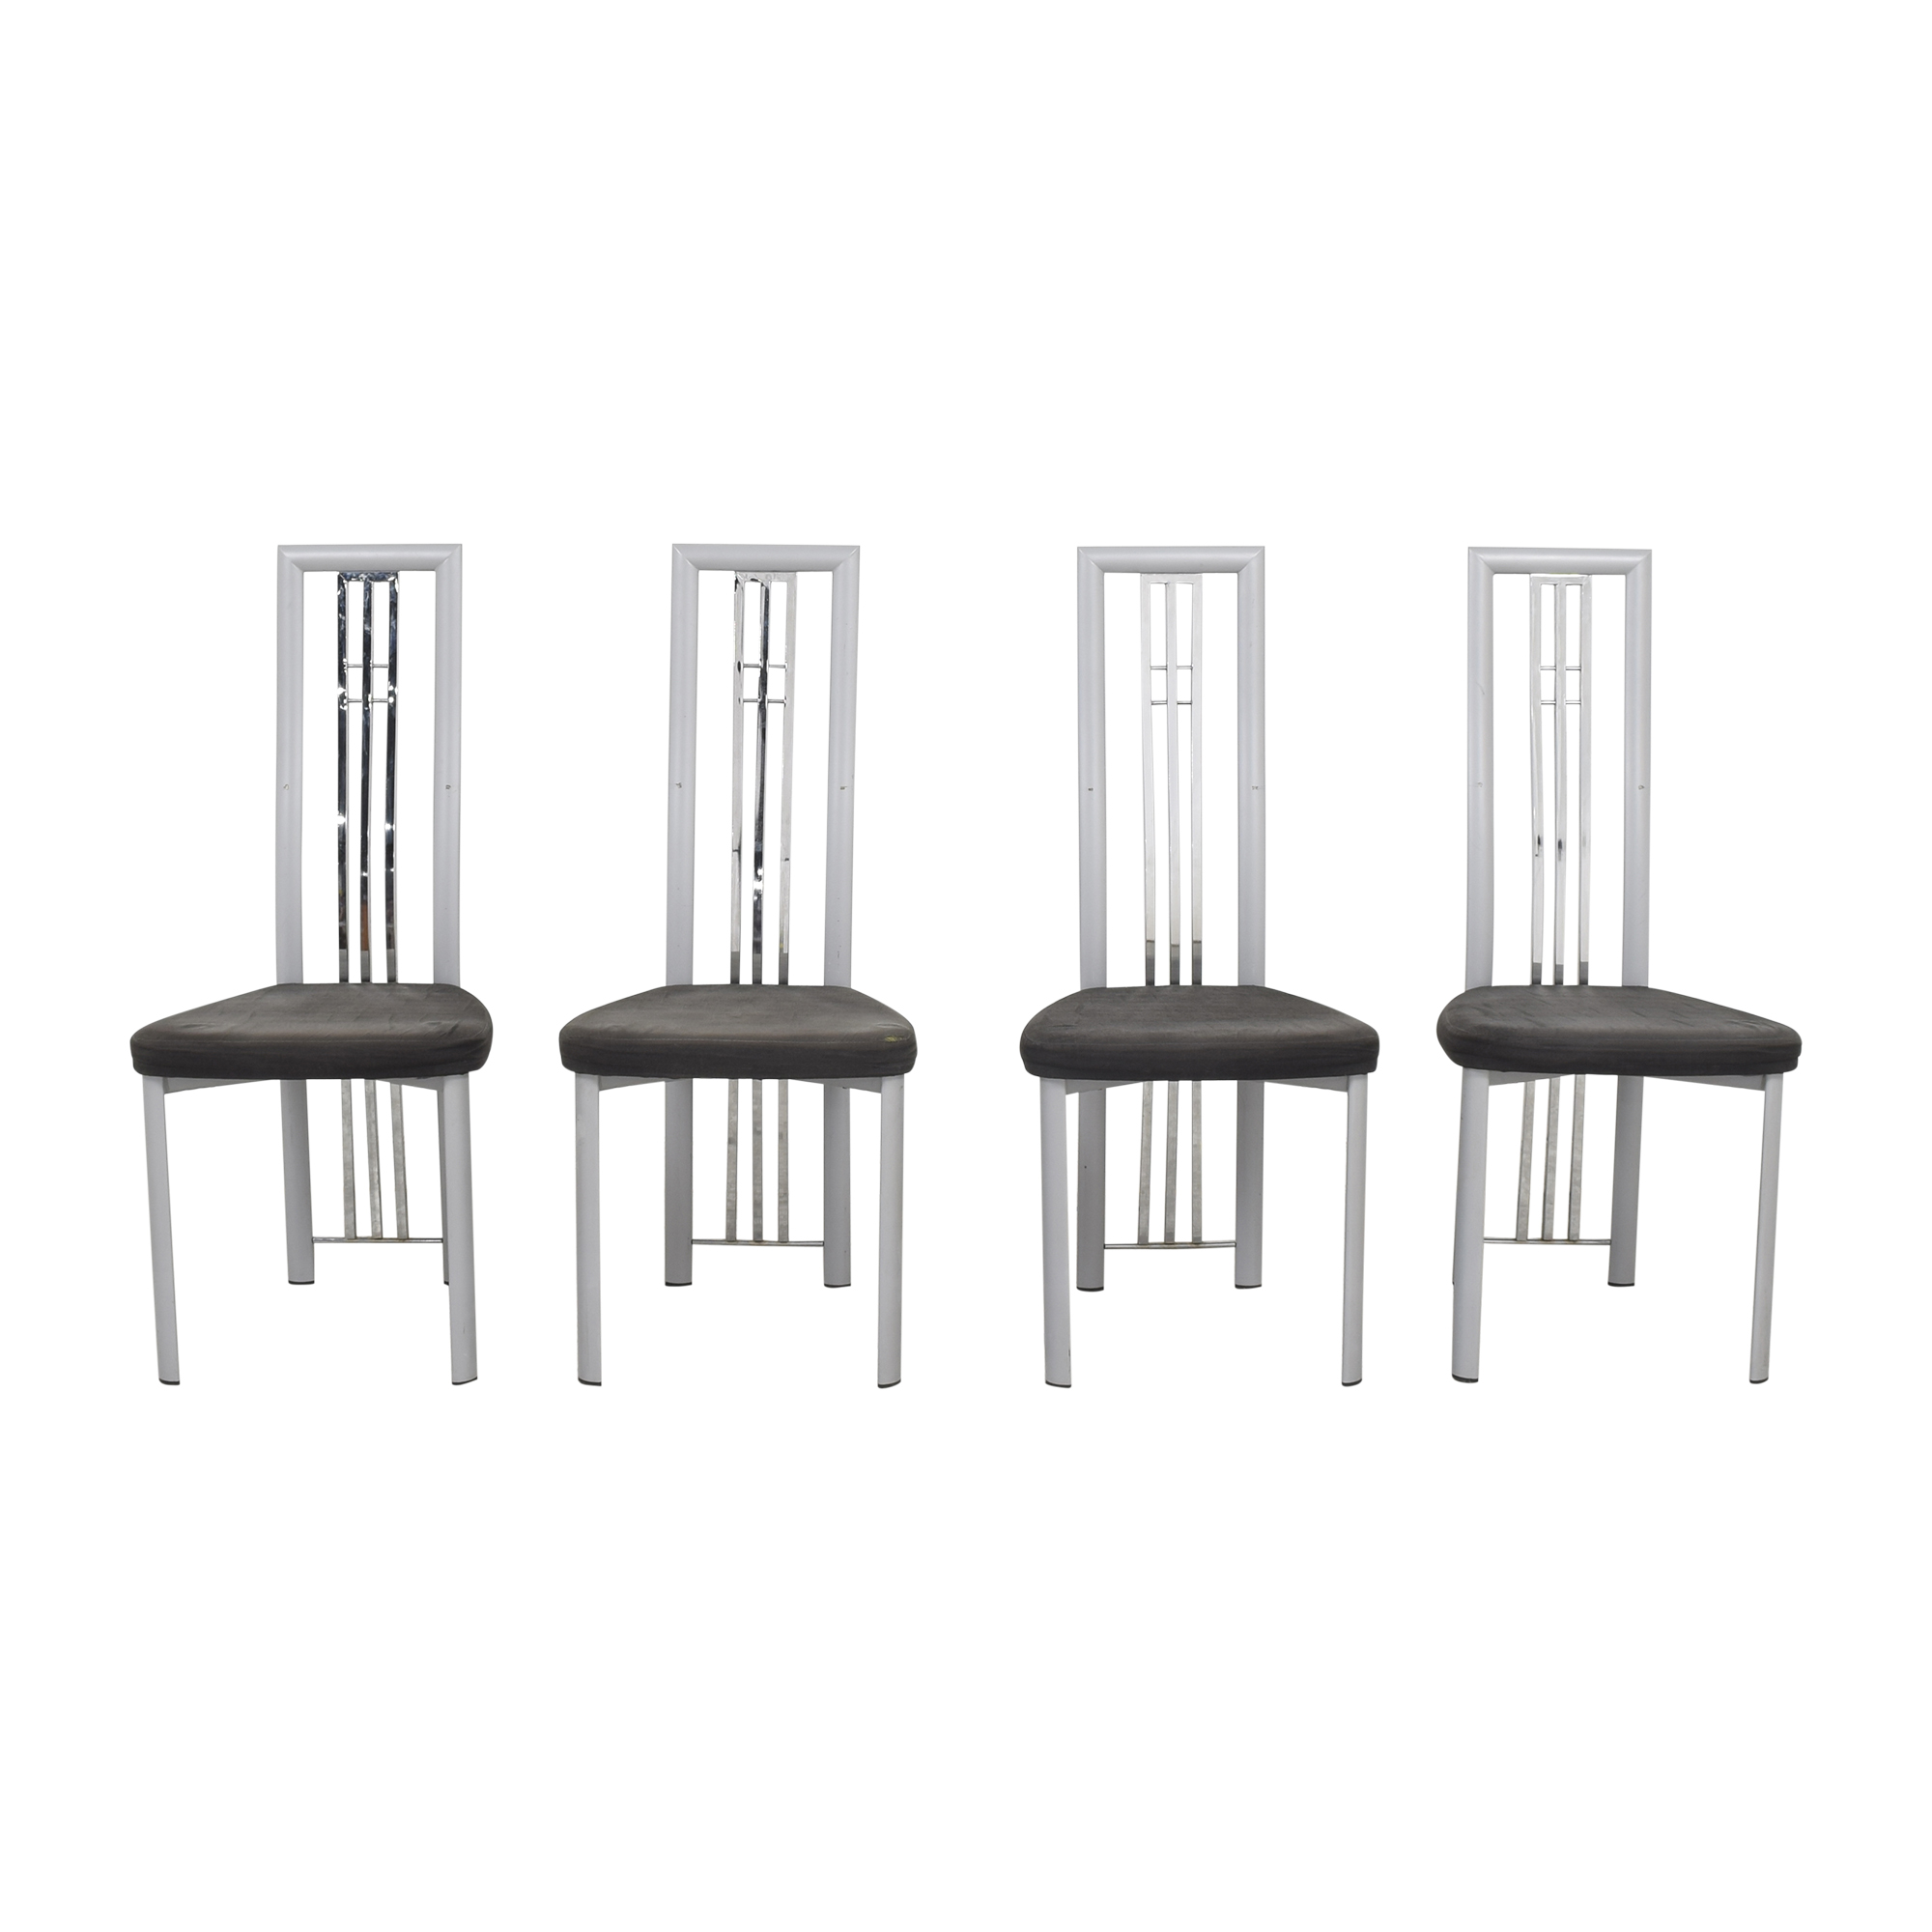 Effezeta Effezeta High Back Dining Chairs used